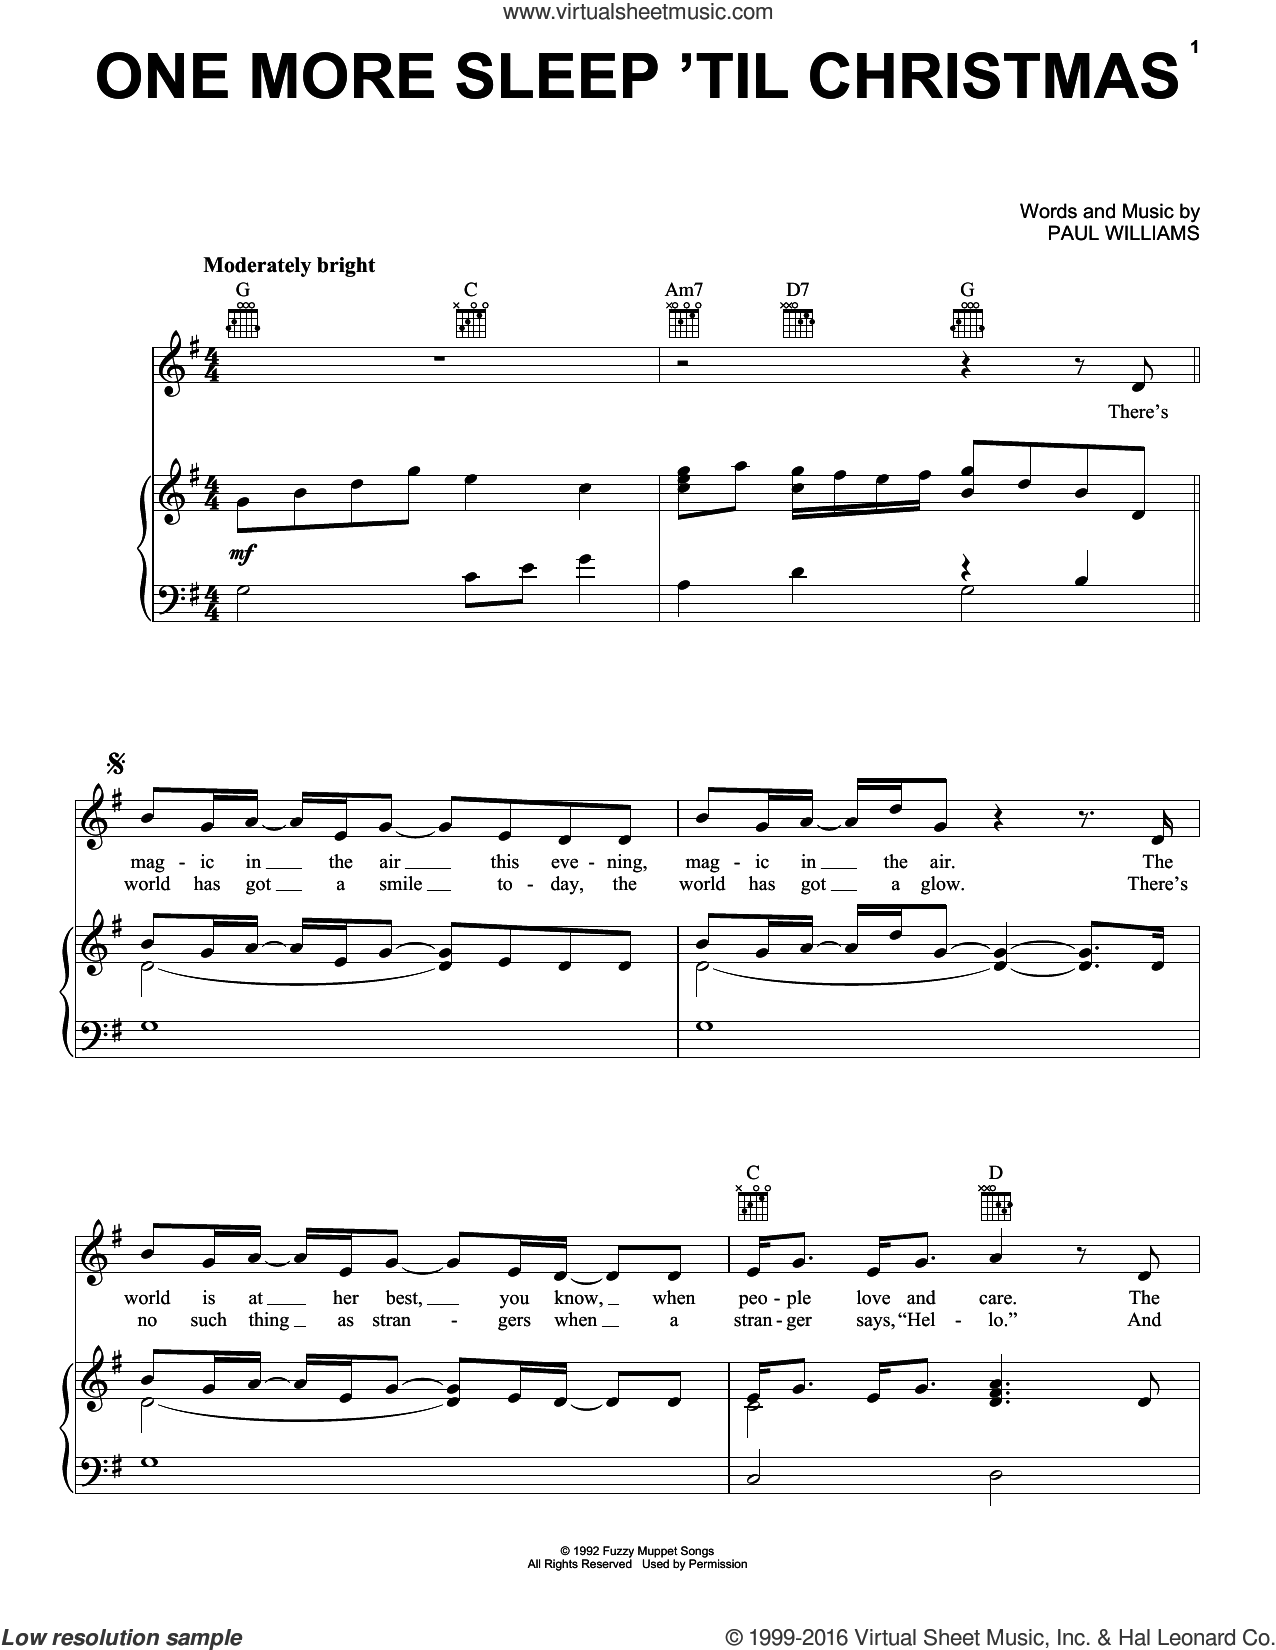 One More Sleep 'Til Christmas sheet music for voice, piano or guitar by Paul Williams, intermediate